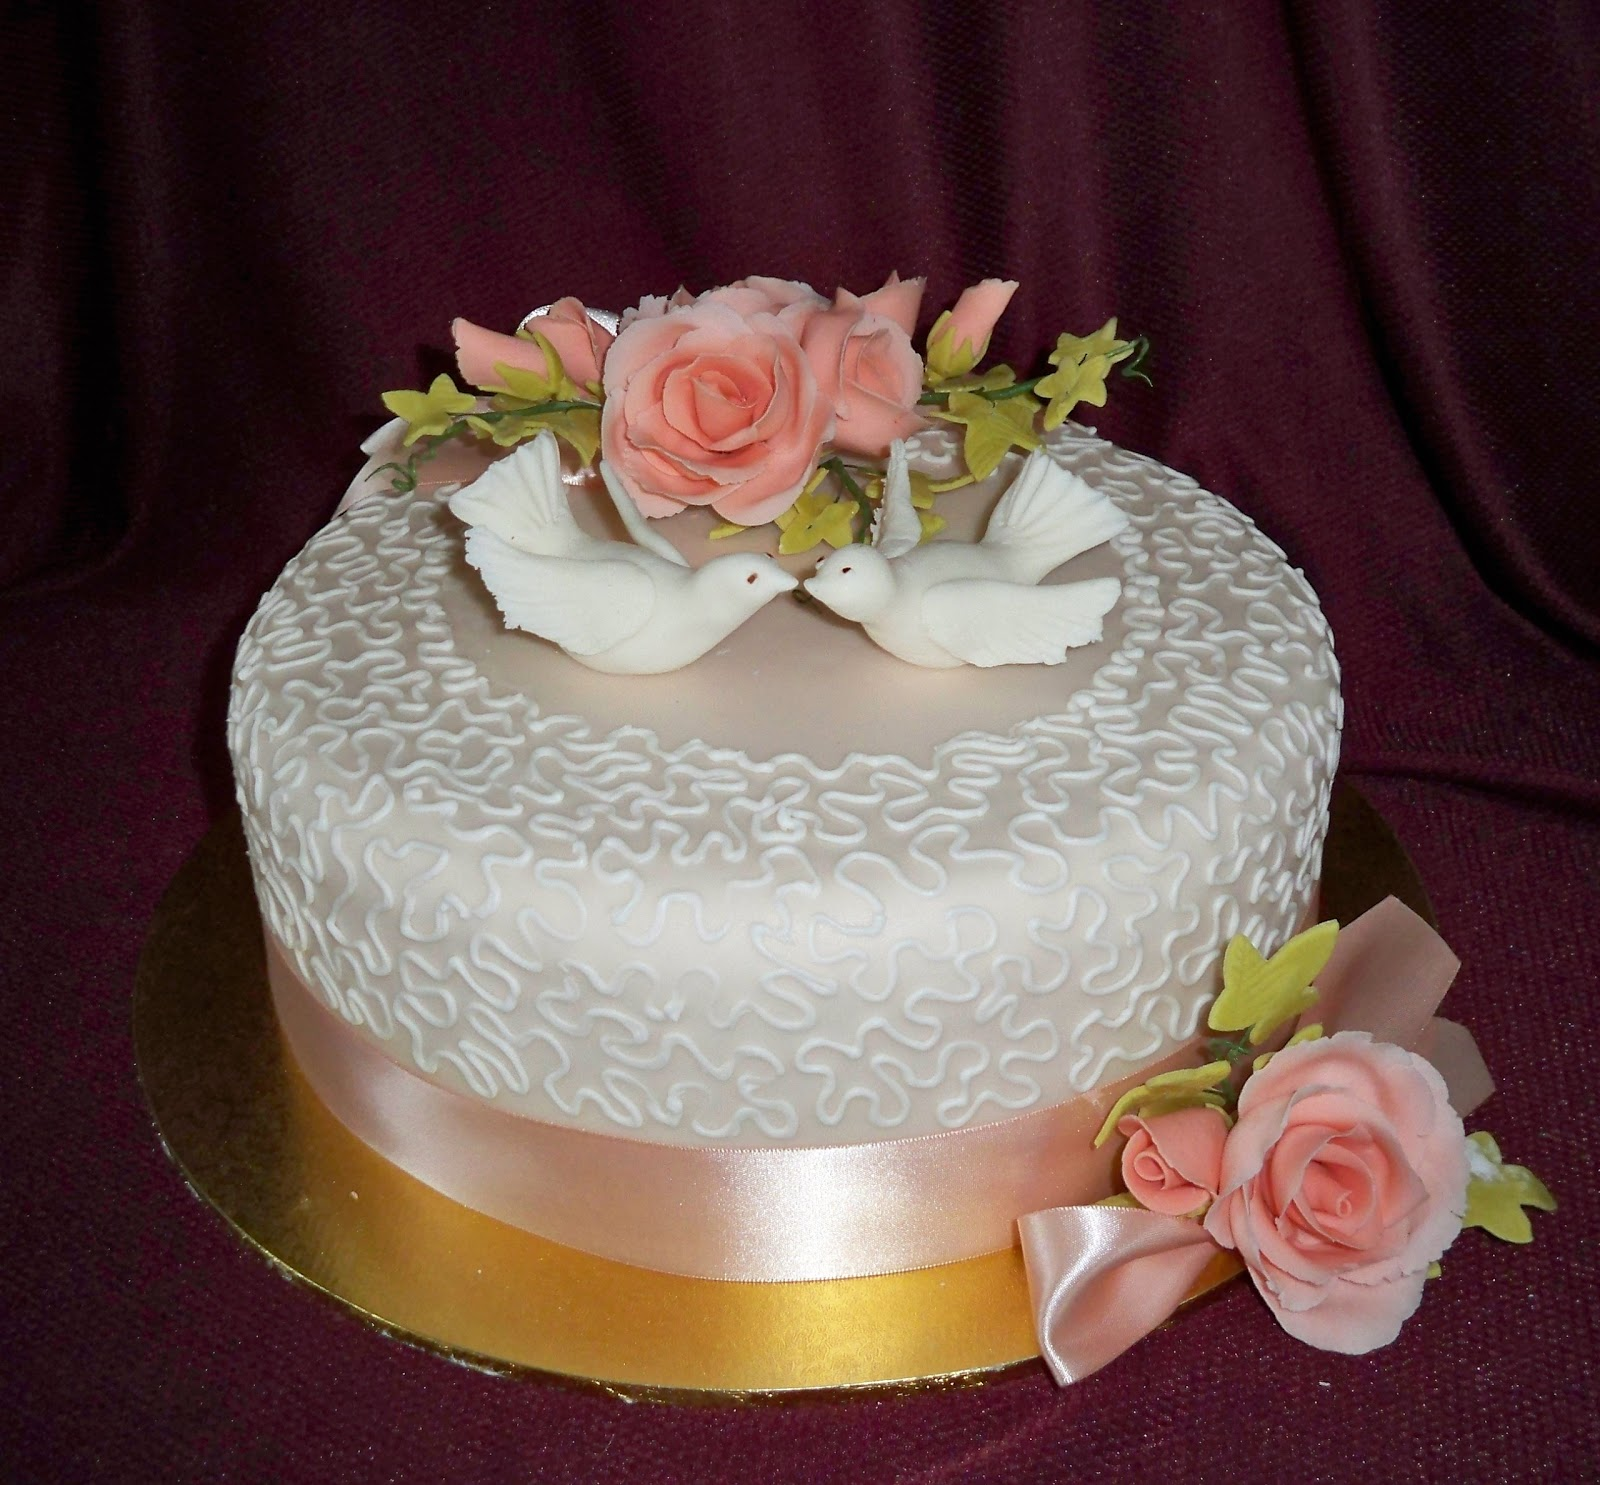 Doves and roses wedding cake